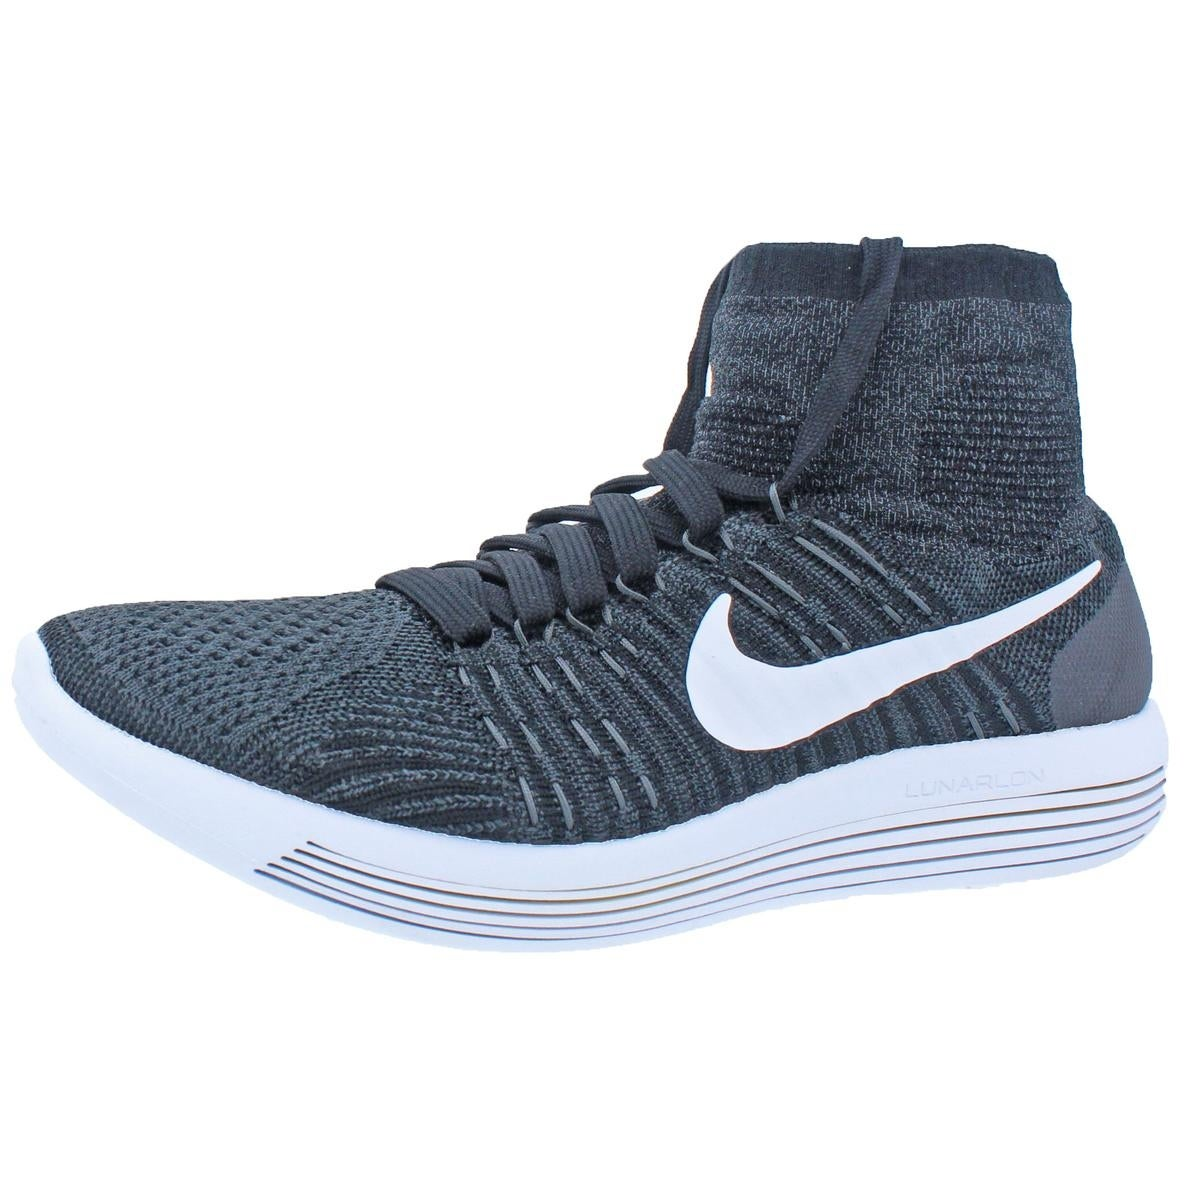 896f3f4d42265 Nike Womens Lunarepic Flyknit Running Shoes Lunarlon Sock Fit - 9 medium  (b